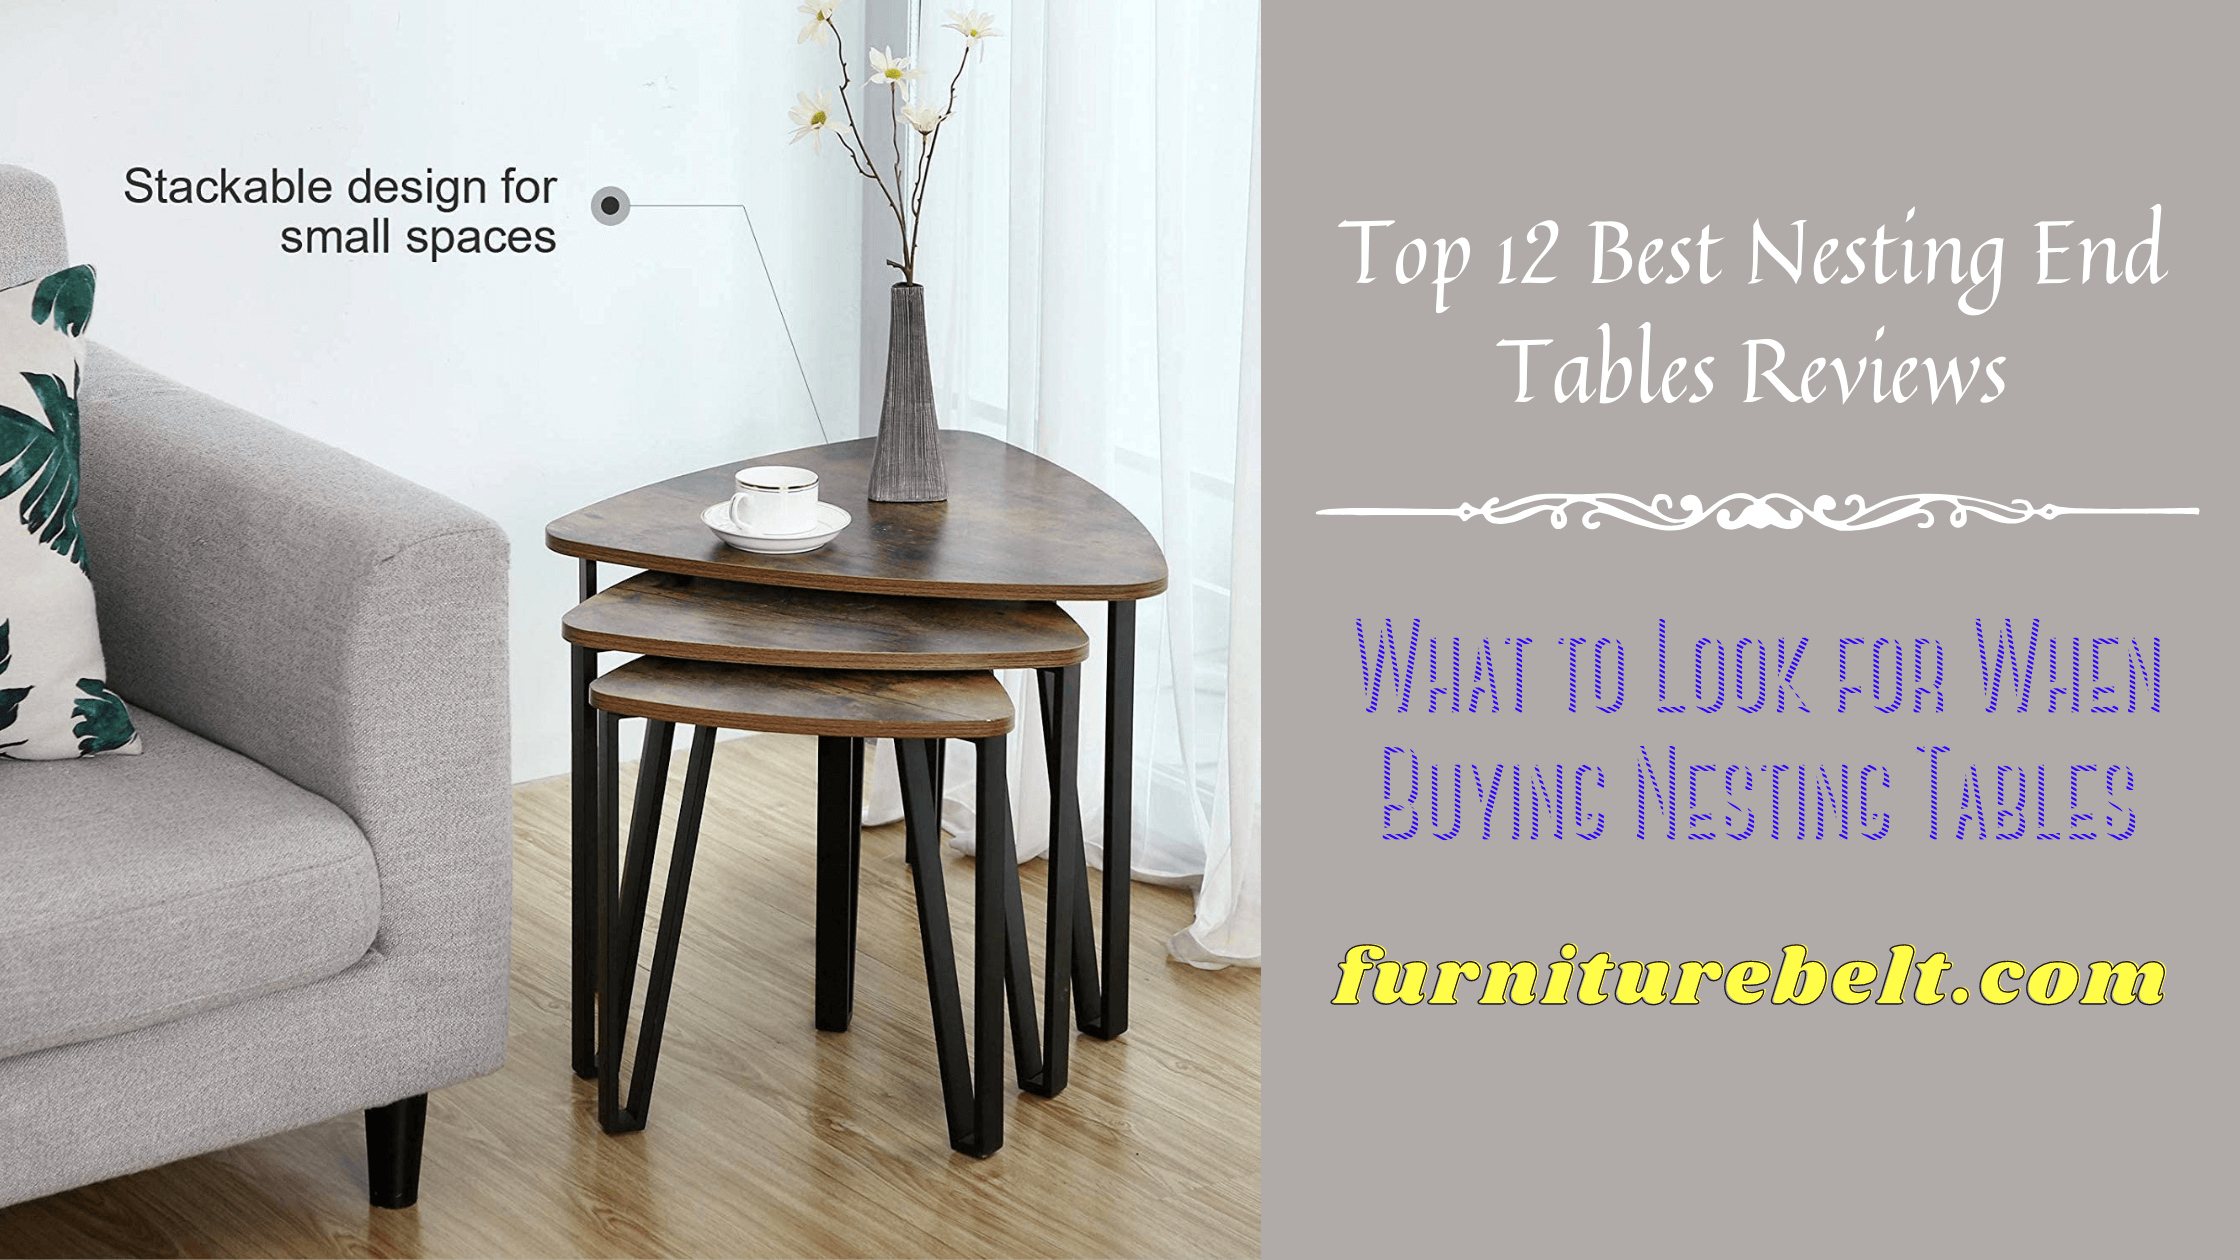 Best Nesting End Tables